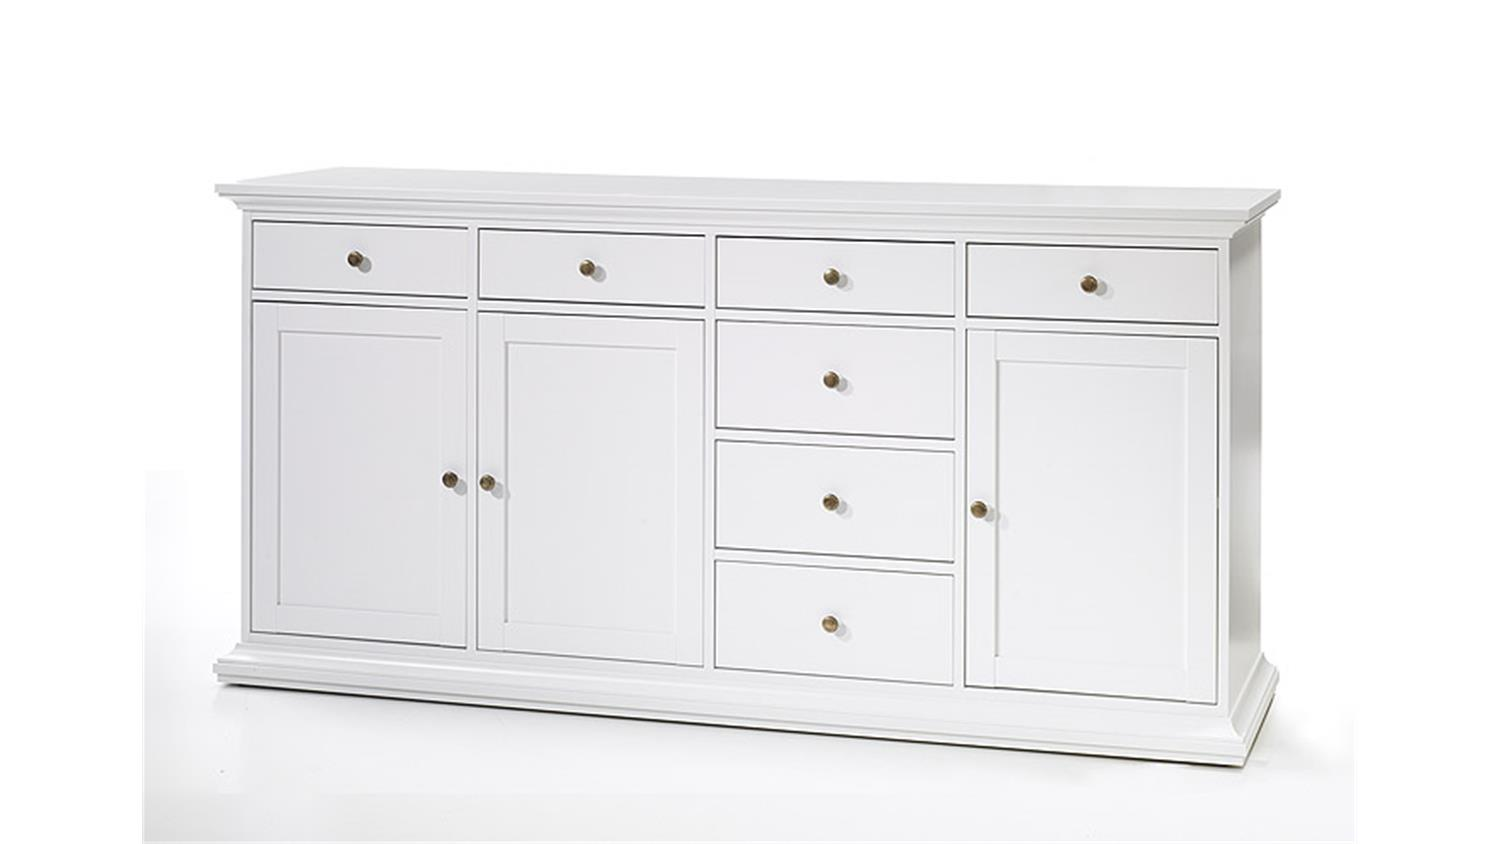 Sideboard 3 Paris Kommode In Weiss Dekor Landhausstil 3 Turig